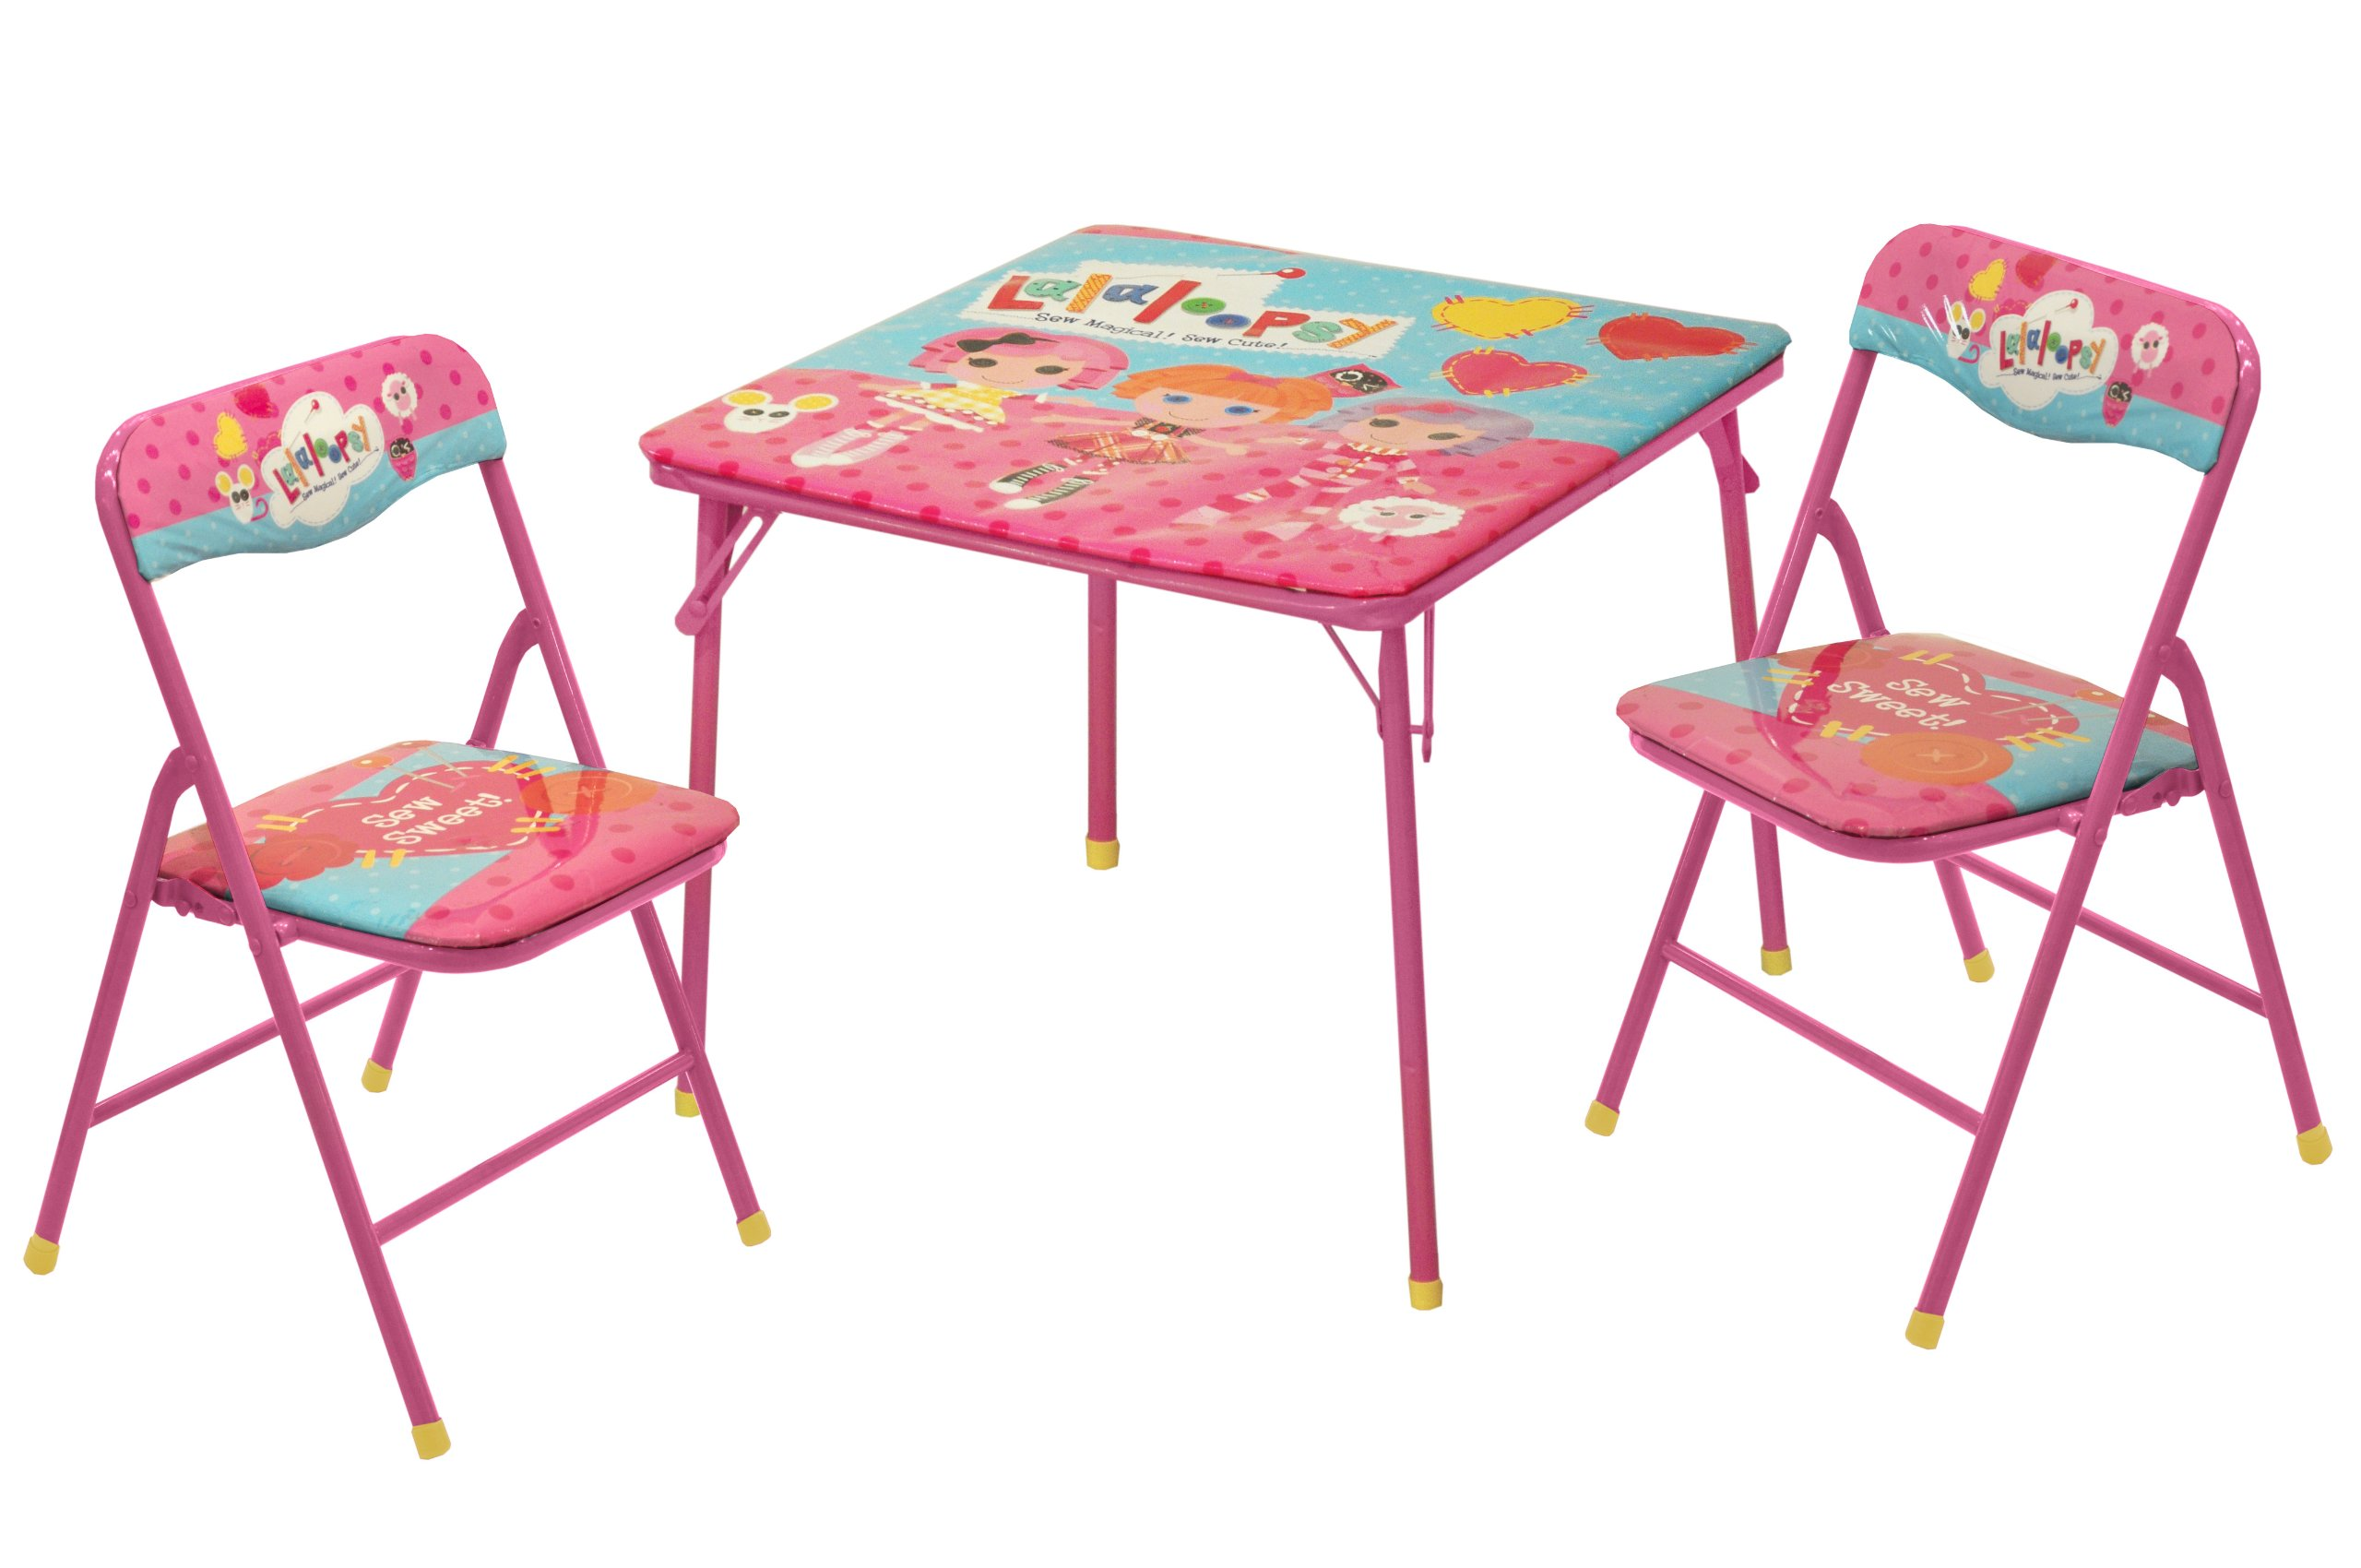 Lalaloopsy Square Table and Chair Set, 3-Pack